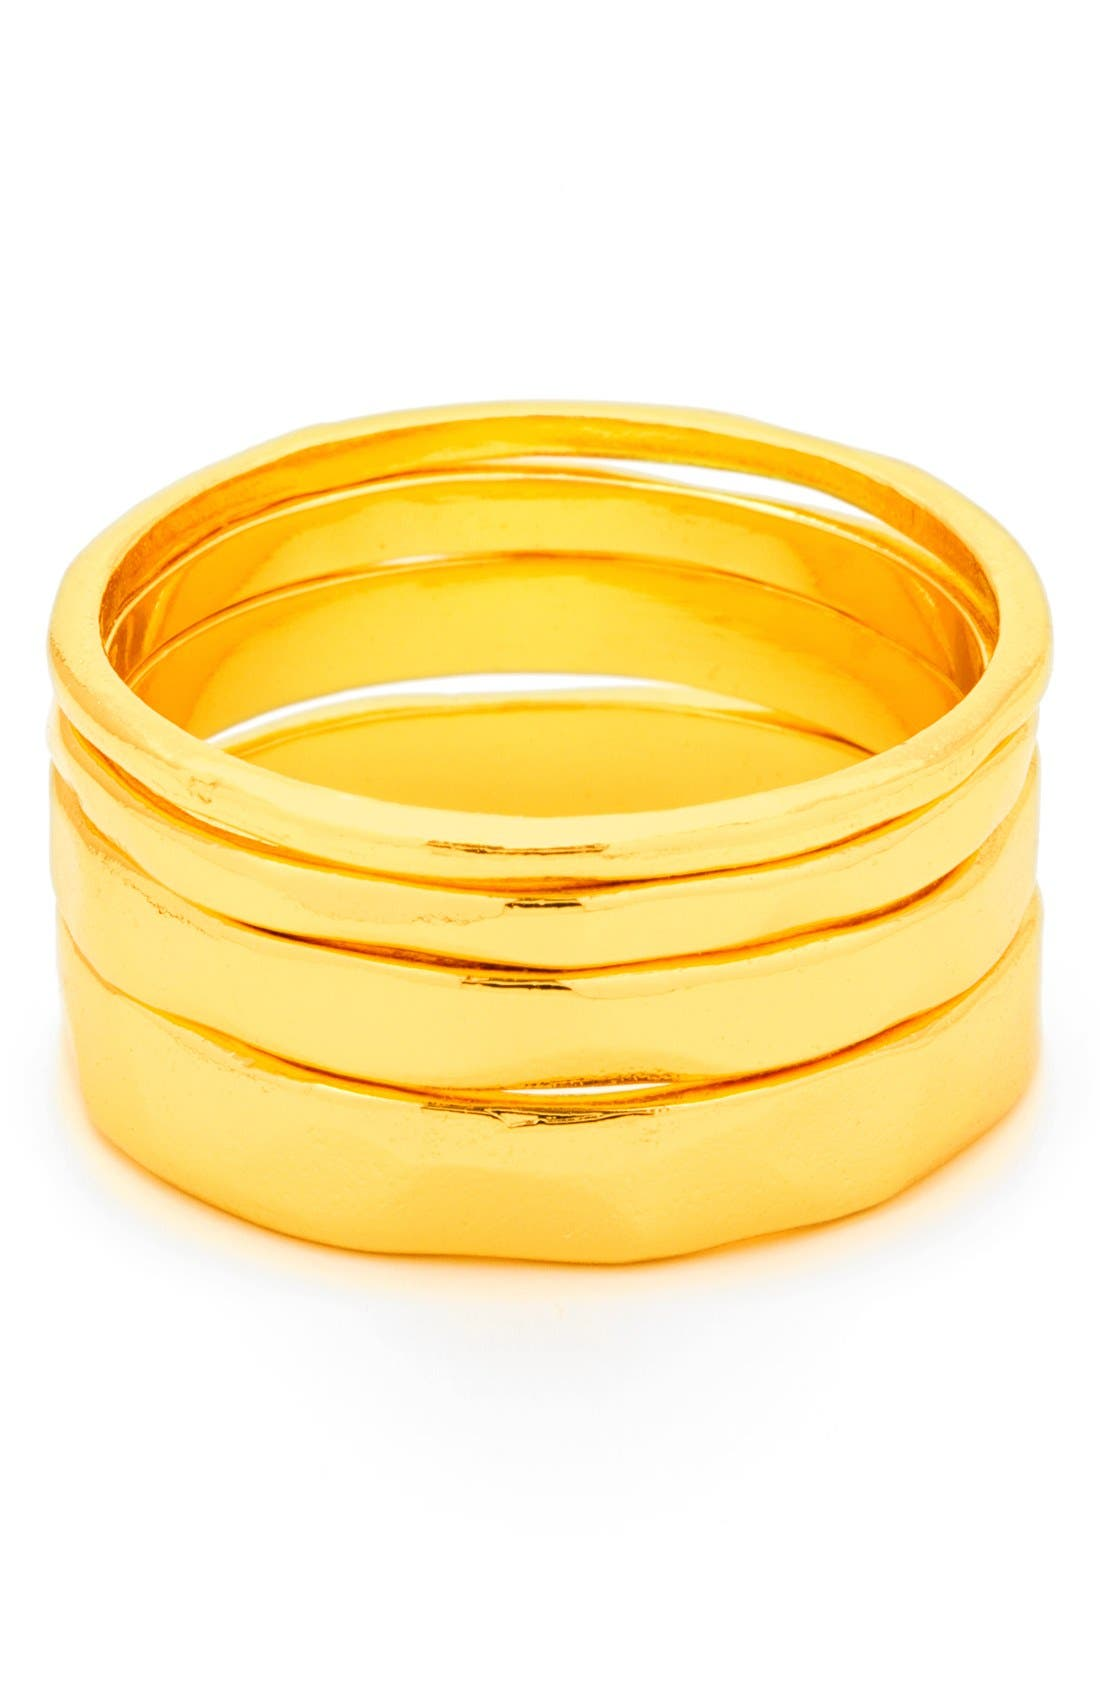 'G' Stacking Rings,                             Main thumbnail 1, color,                             Gold